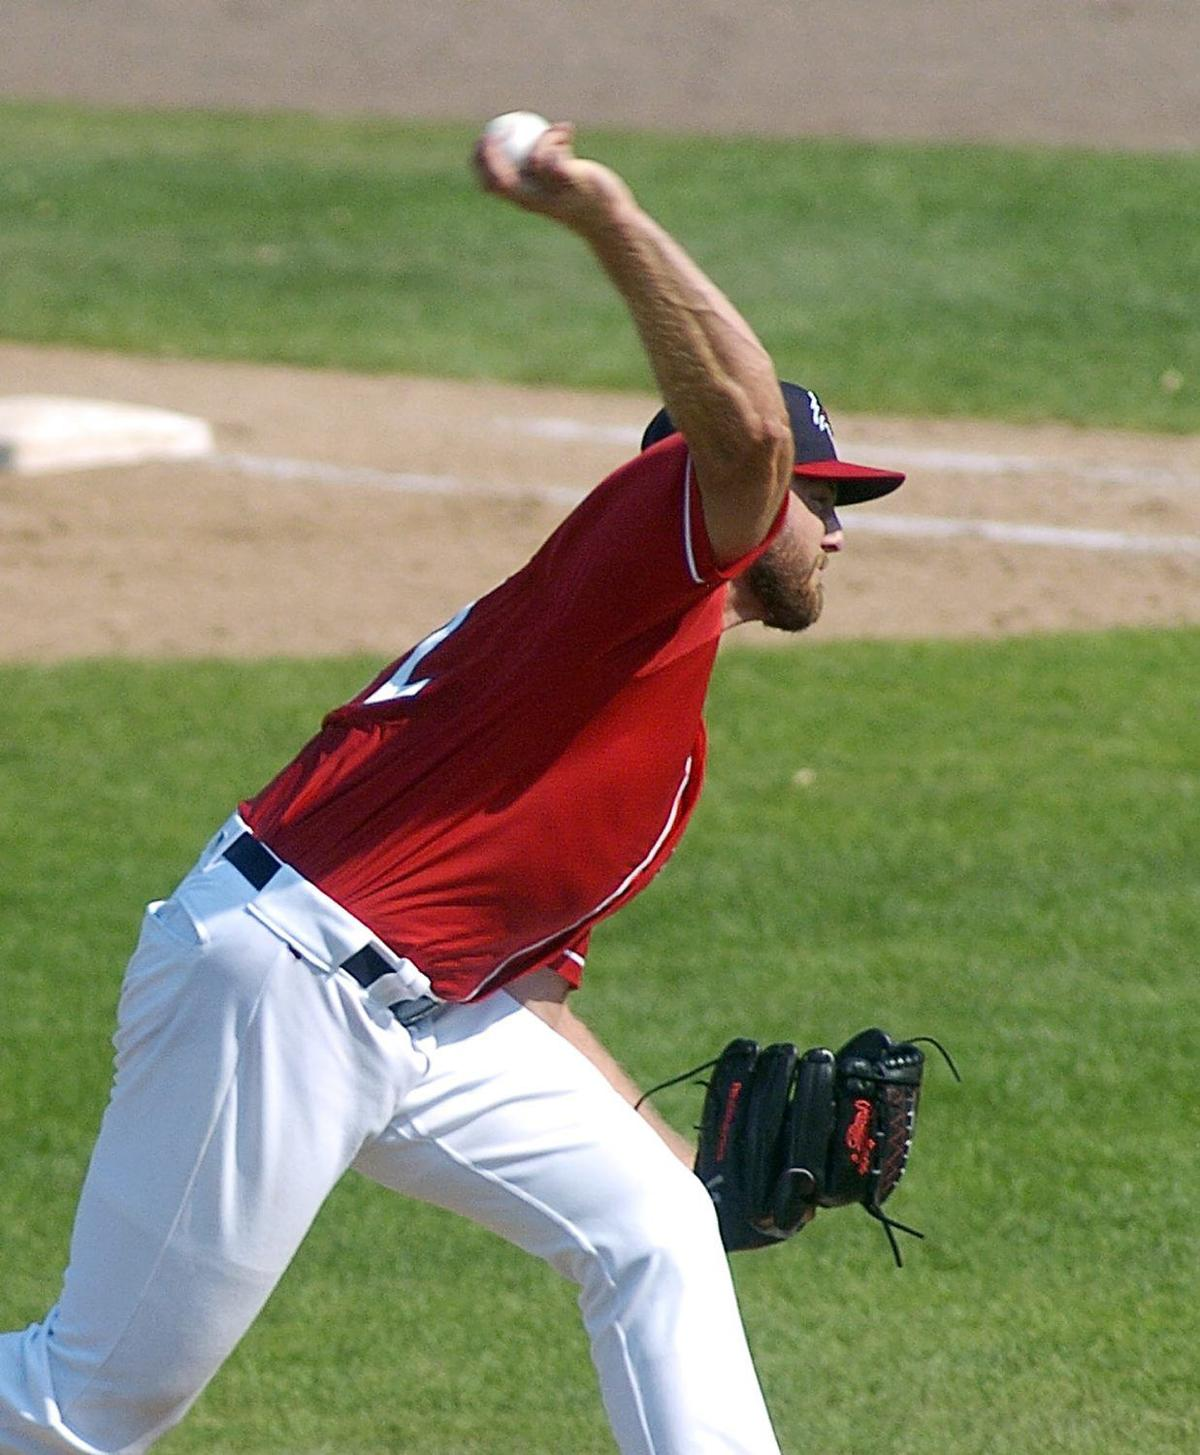 A day after clinching, Fishers win